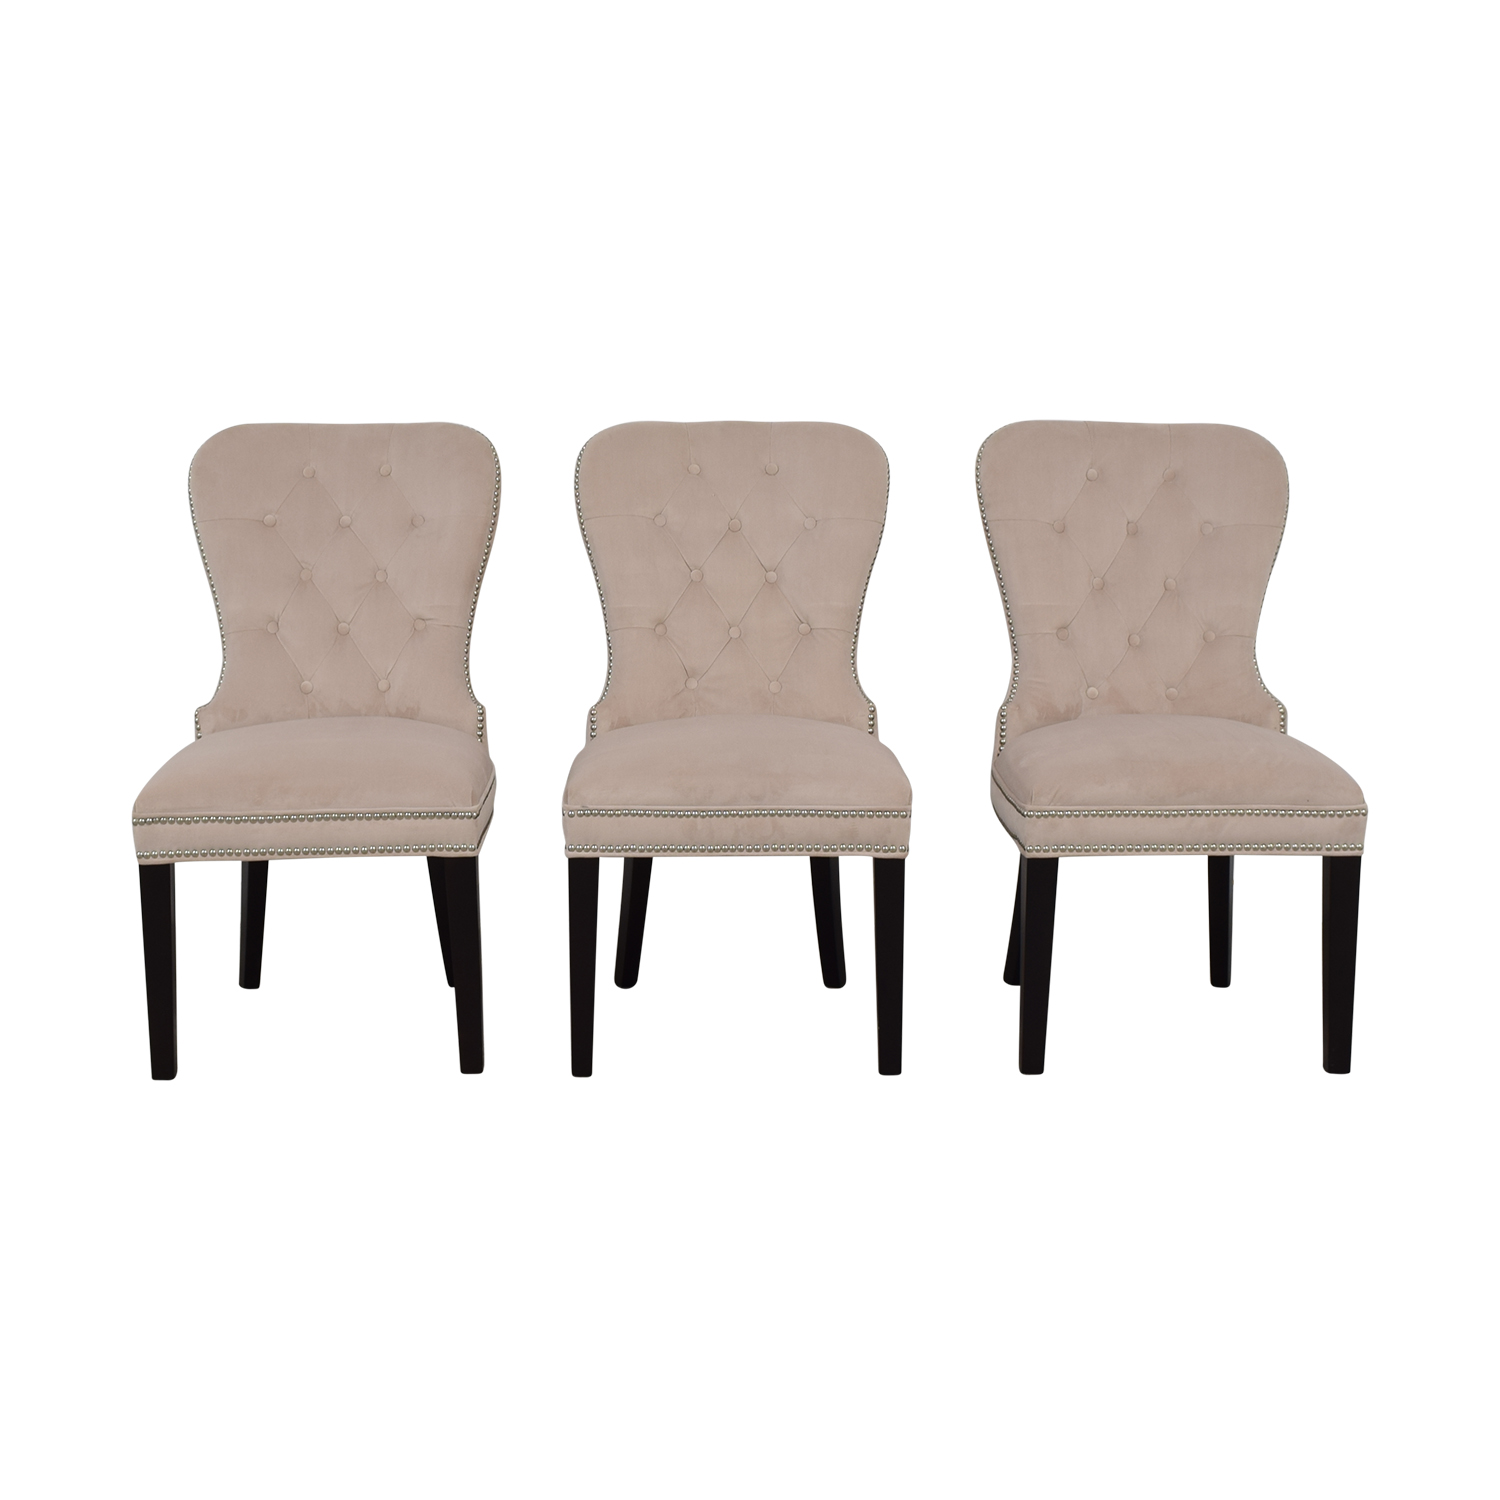 Magnificent 90 Off Z Gallerie Z Gallerie Charlotte Cream Tufted Nailhead Dining Chairs Chairs Gmtry Best Dining Table And Chair Ideas Images Gmtryco